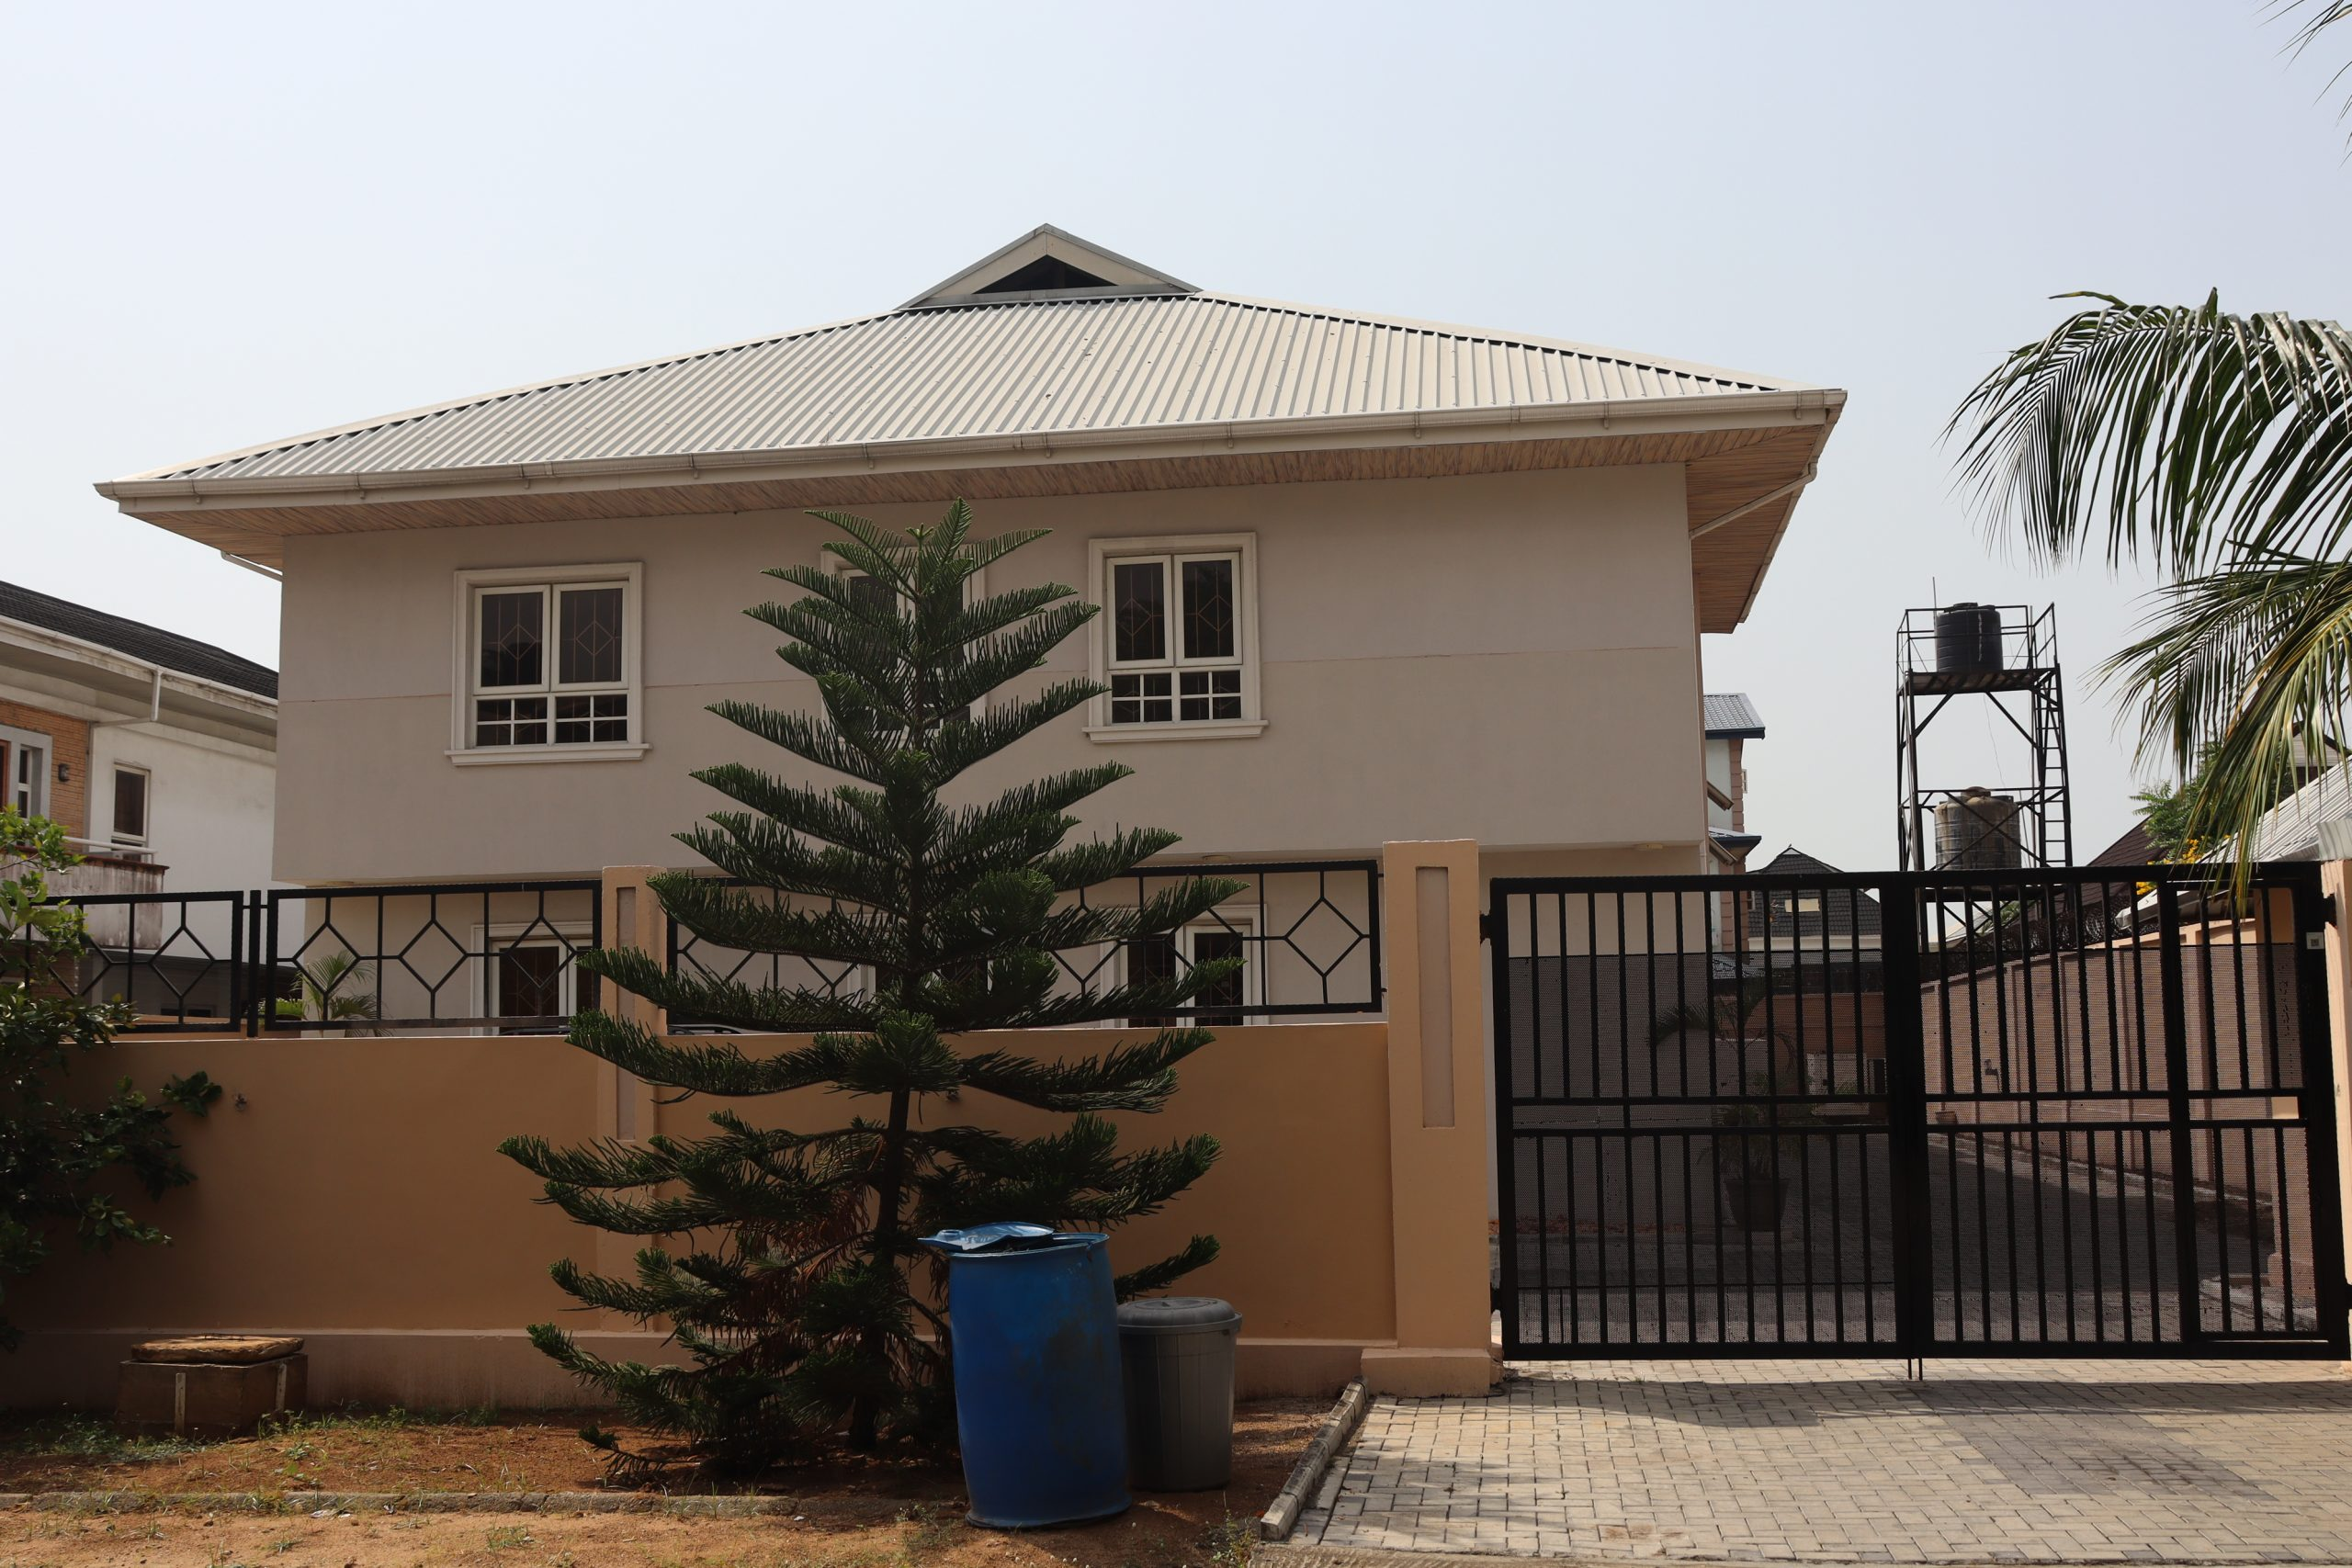 4 Bedroom Duplex at Lekki Phase 1